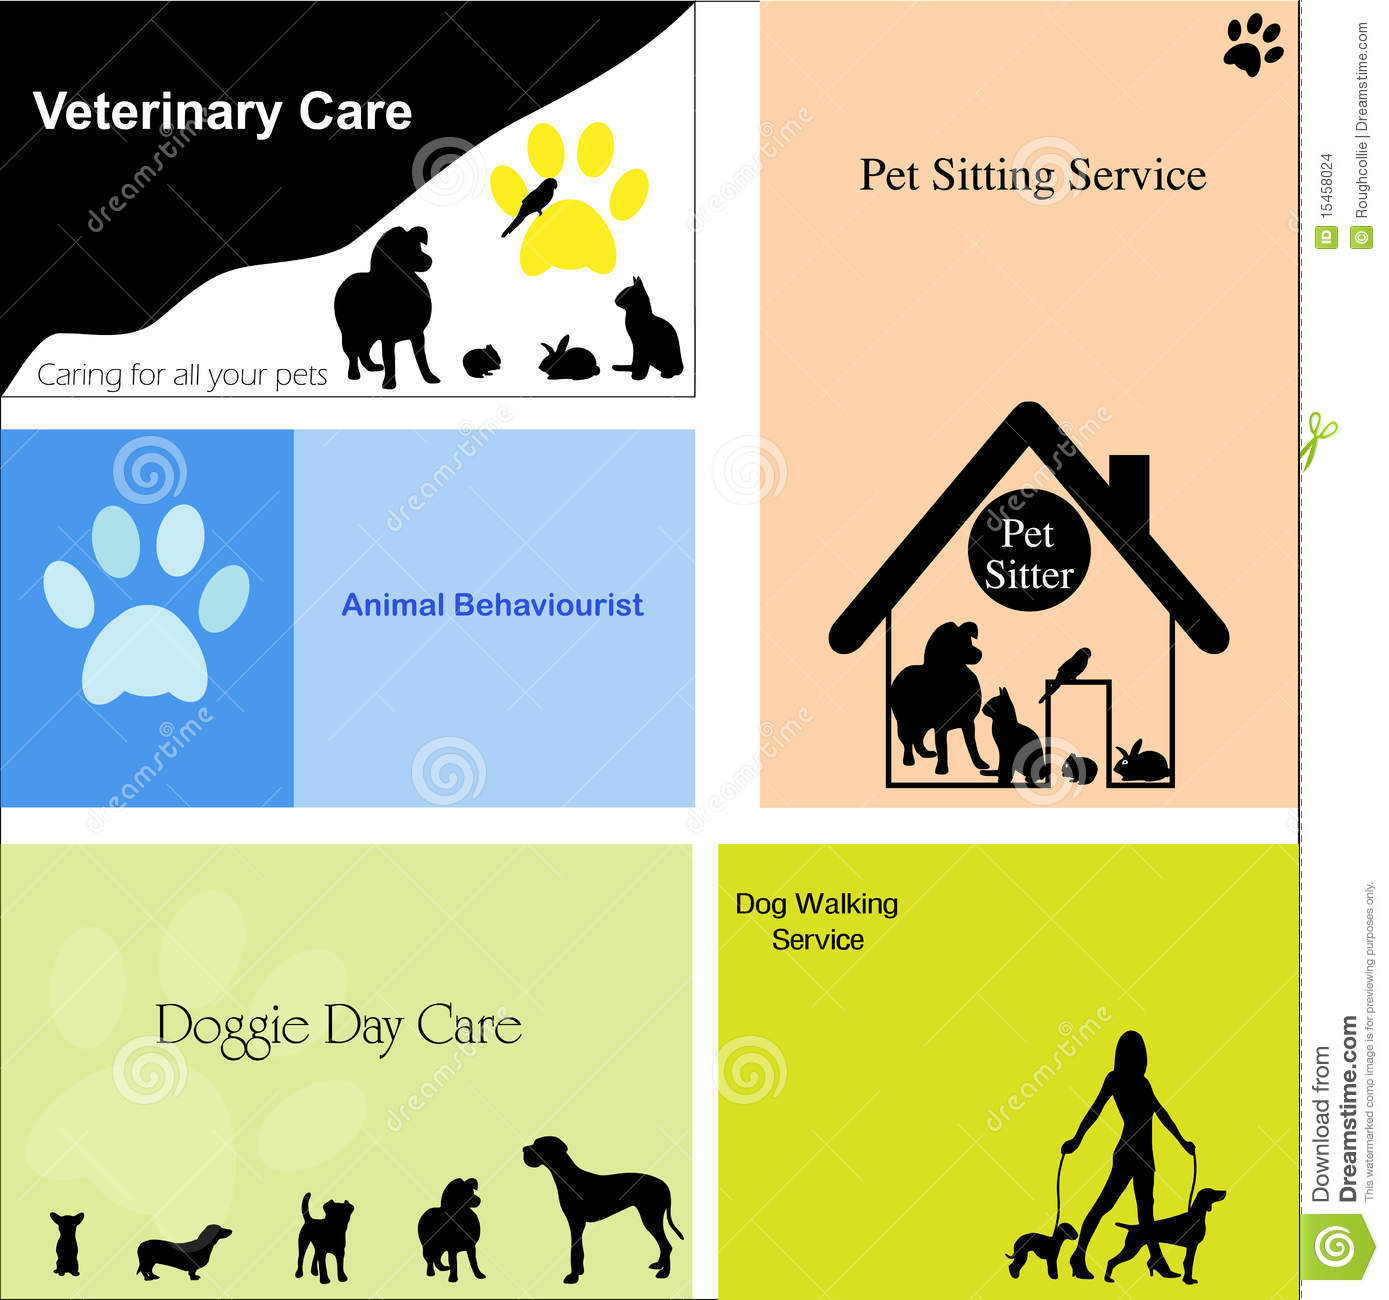 ... For Pet Sitting Or Pet Care Business Stock Vector - 1389x1300 - jpeg